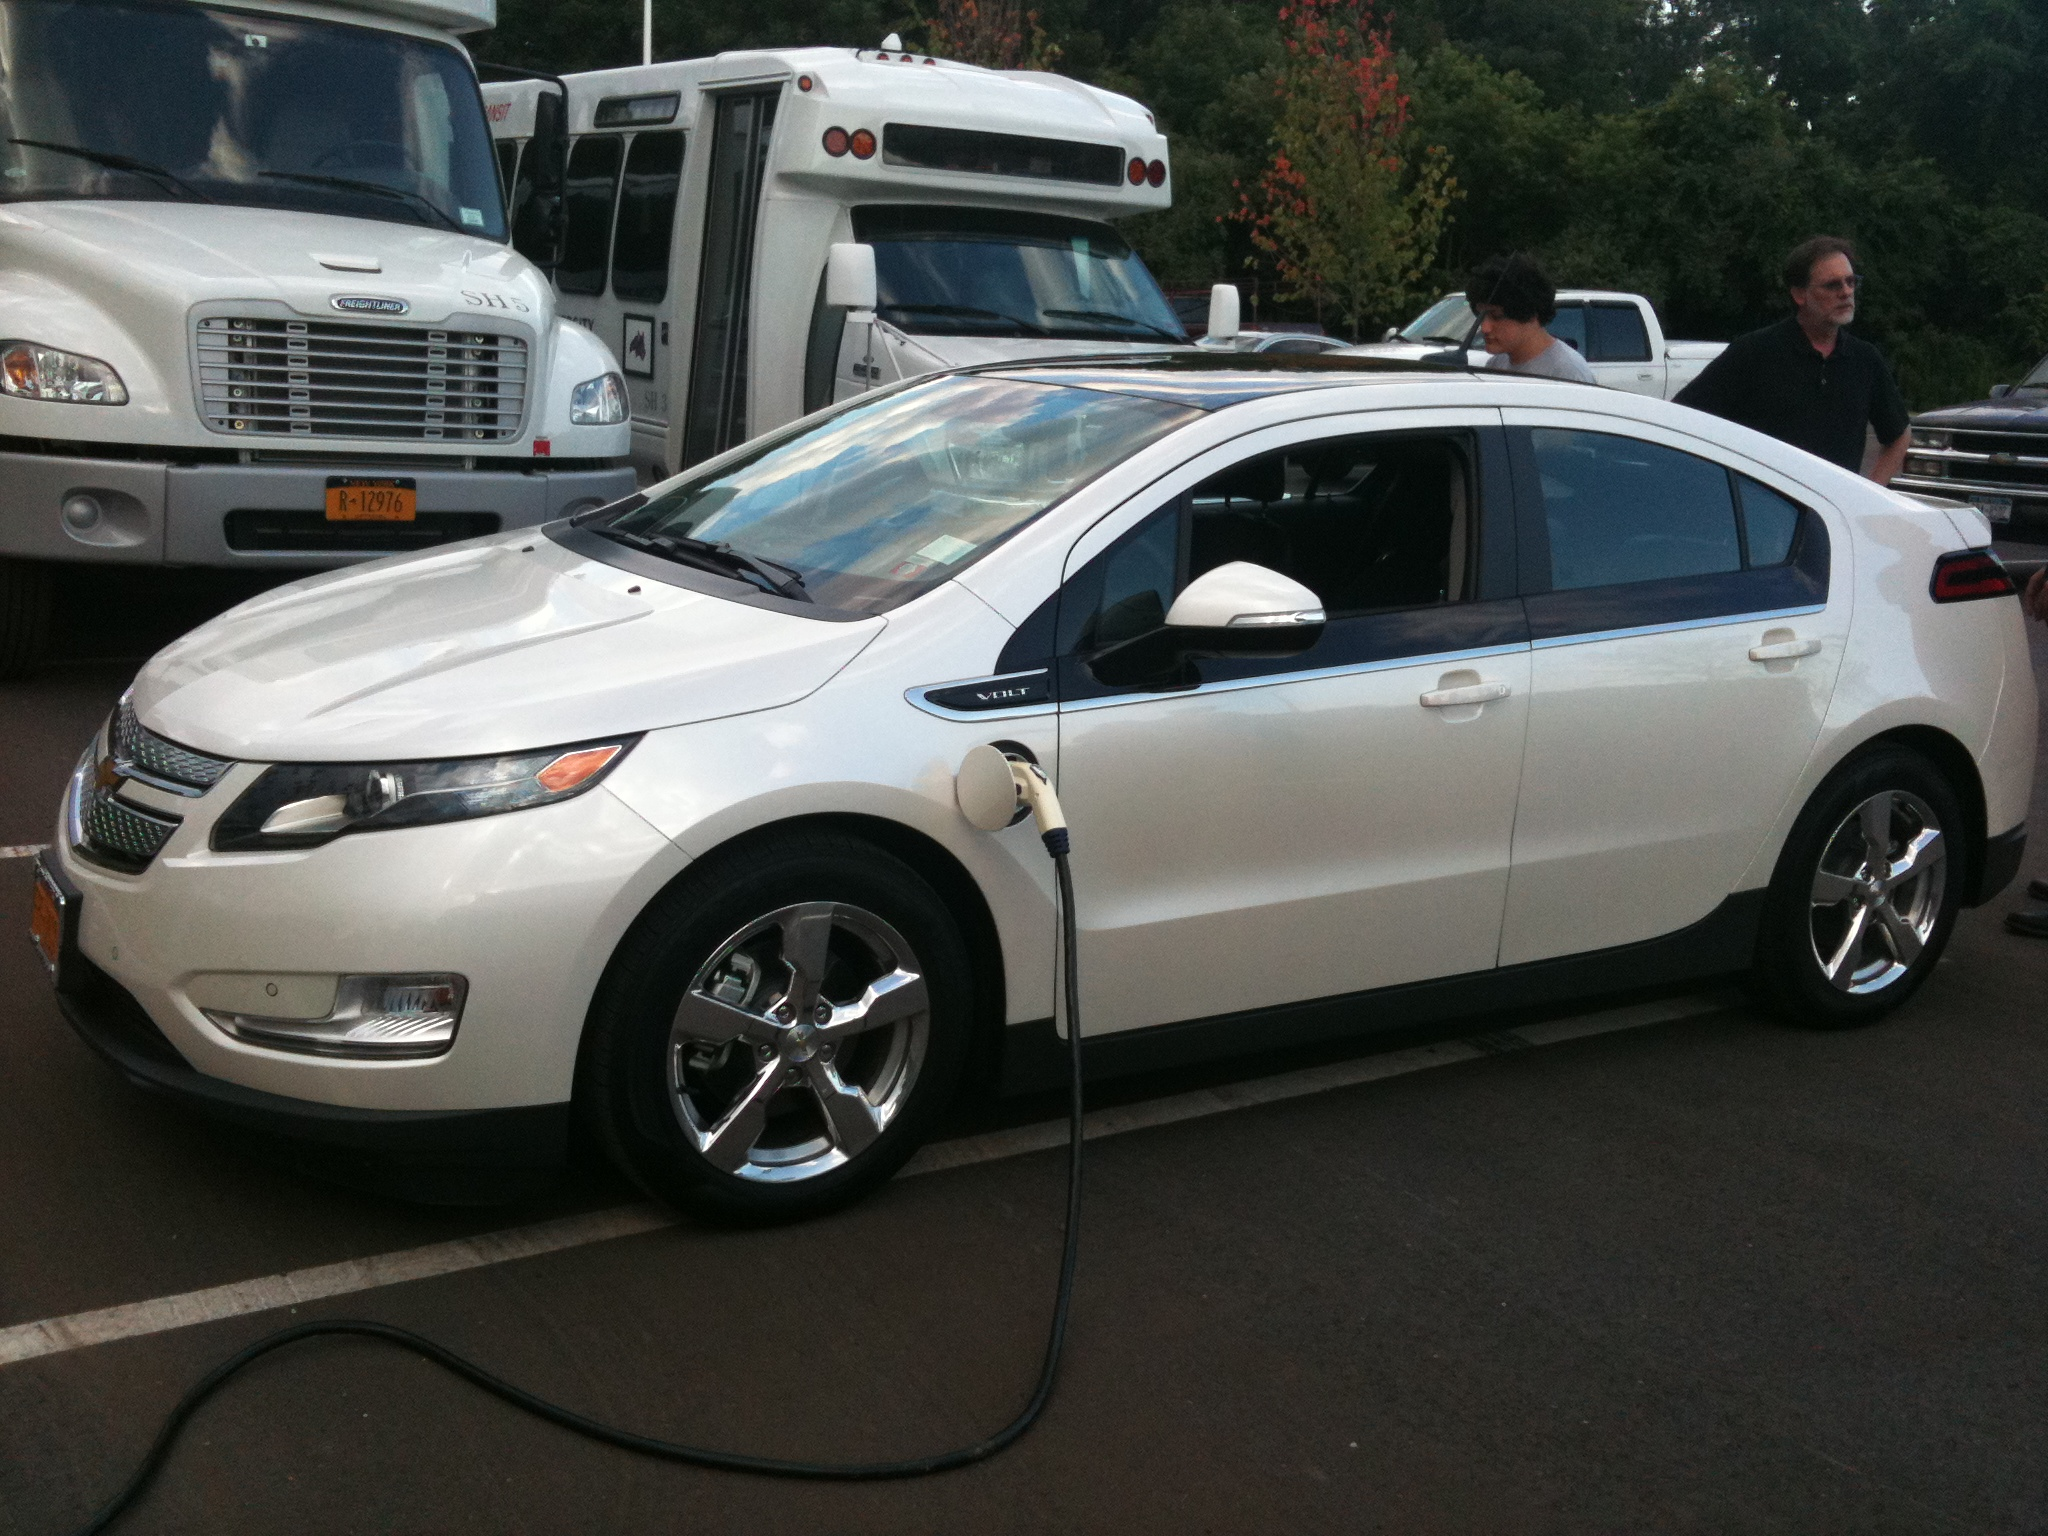 Mike  Anzalone's new Chevy Volt on Charge